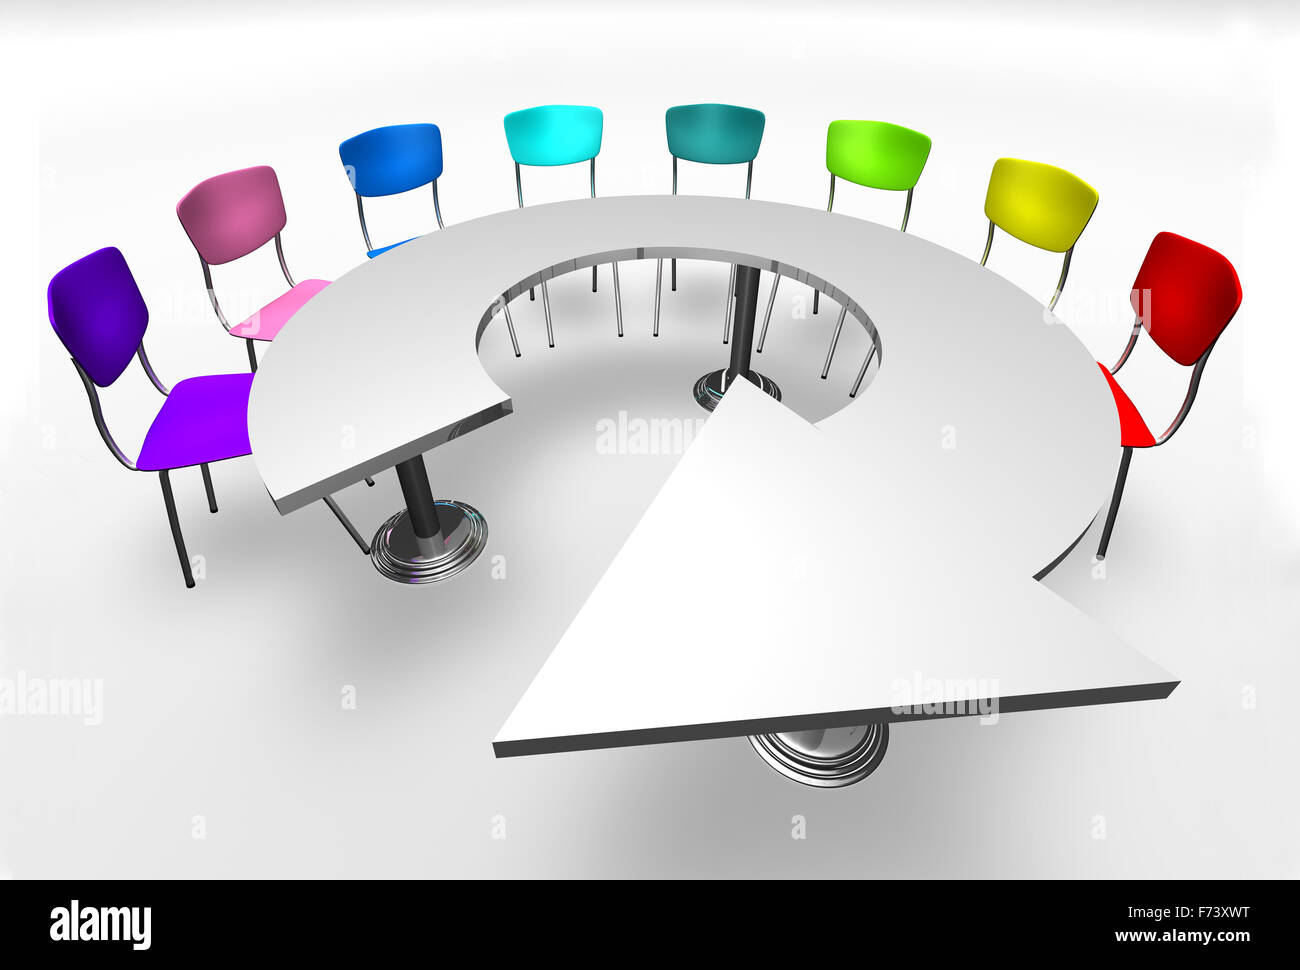 Assembly and meeting concept.Design furniture and chairs - Stock Image